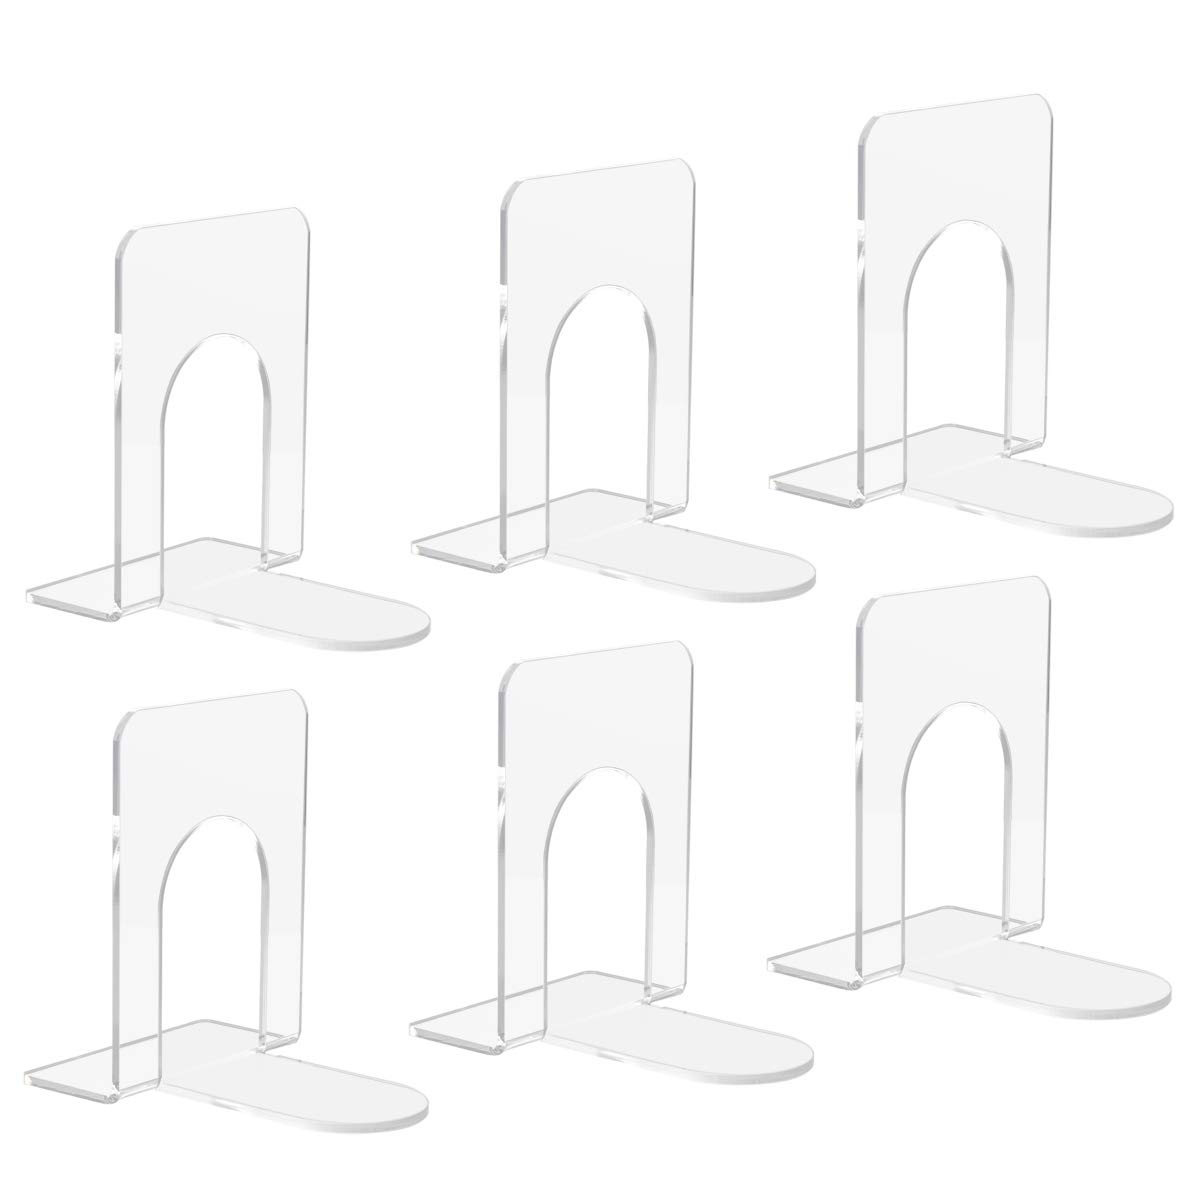 NIUBEE Clear Bookends Acrylic Plastic Book Ends Supports for Books, Movies, DVDs, Magazines- 6 Pieces by NIUBEE